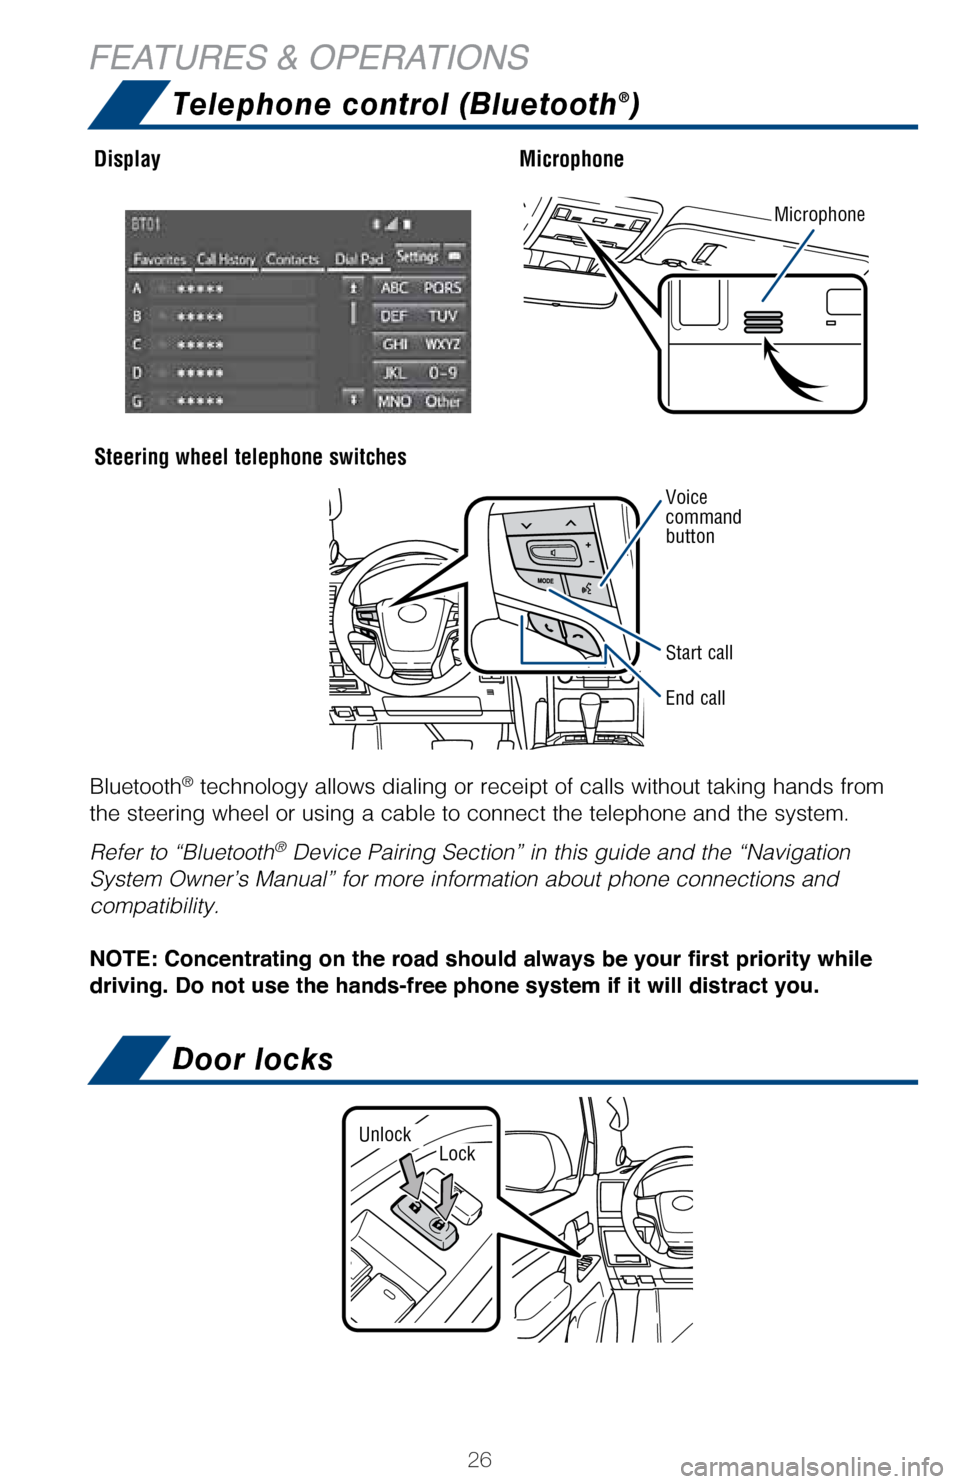 Toyota Land Cruiser 2017 J200 Quick Reference Guide Microphone Locations And More From Page 27 In The Manual 28